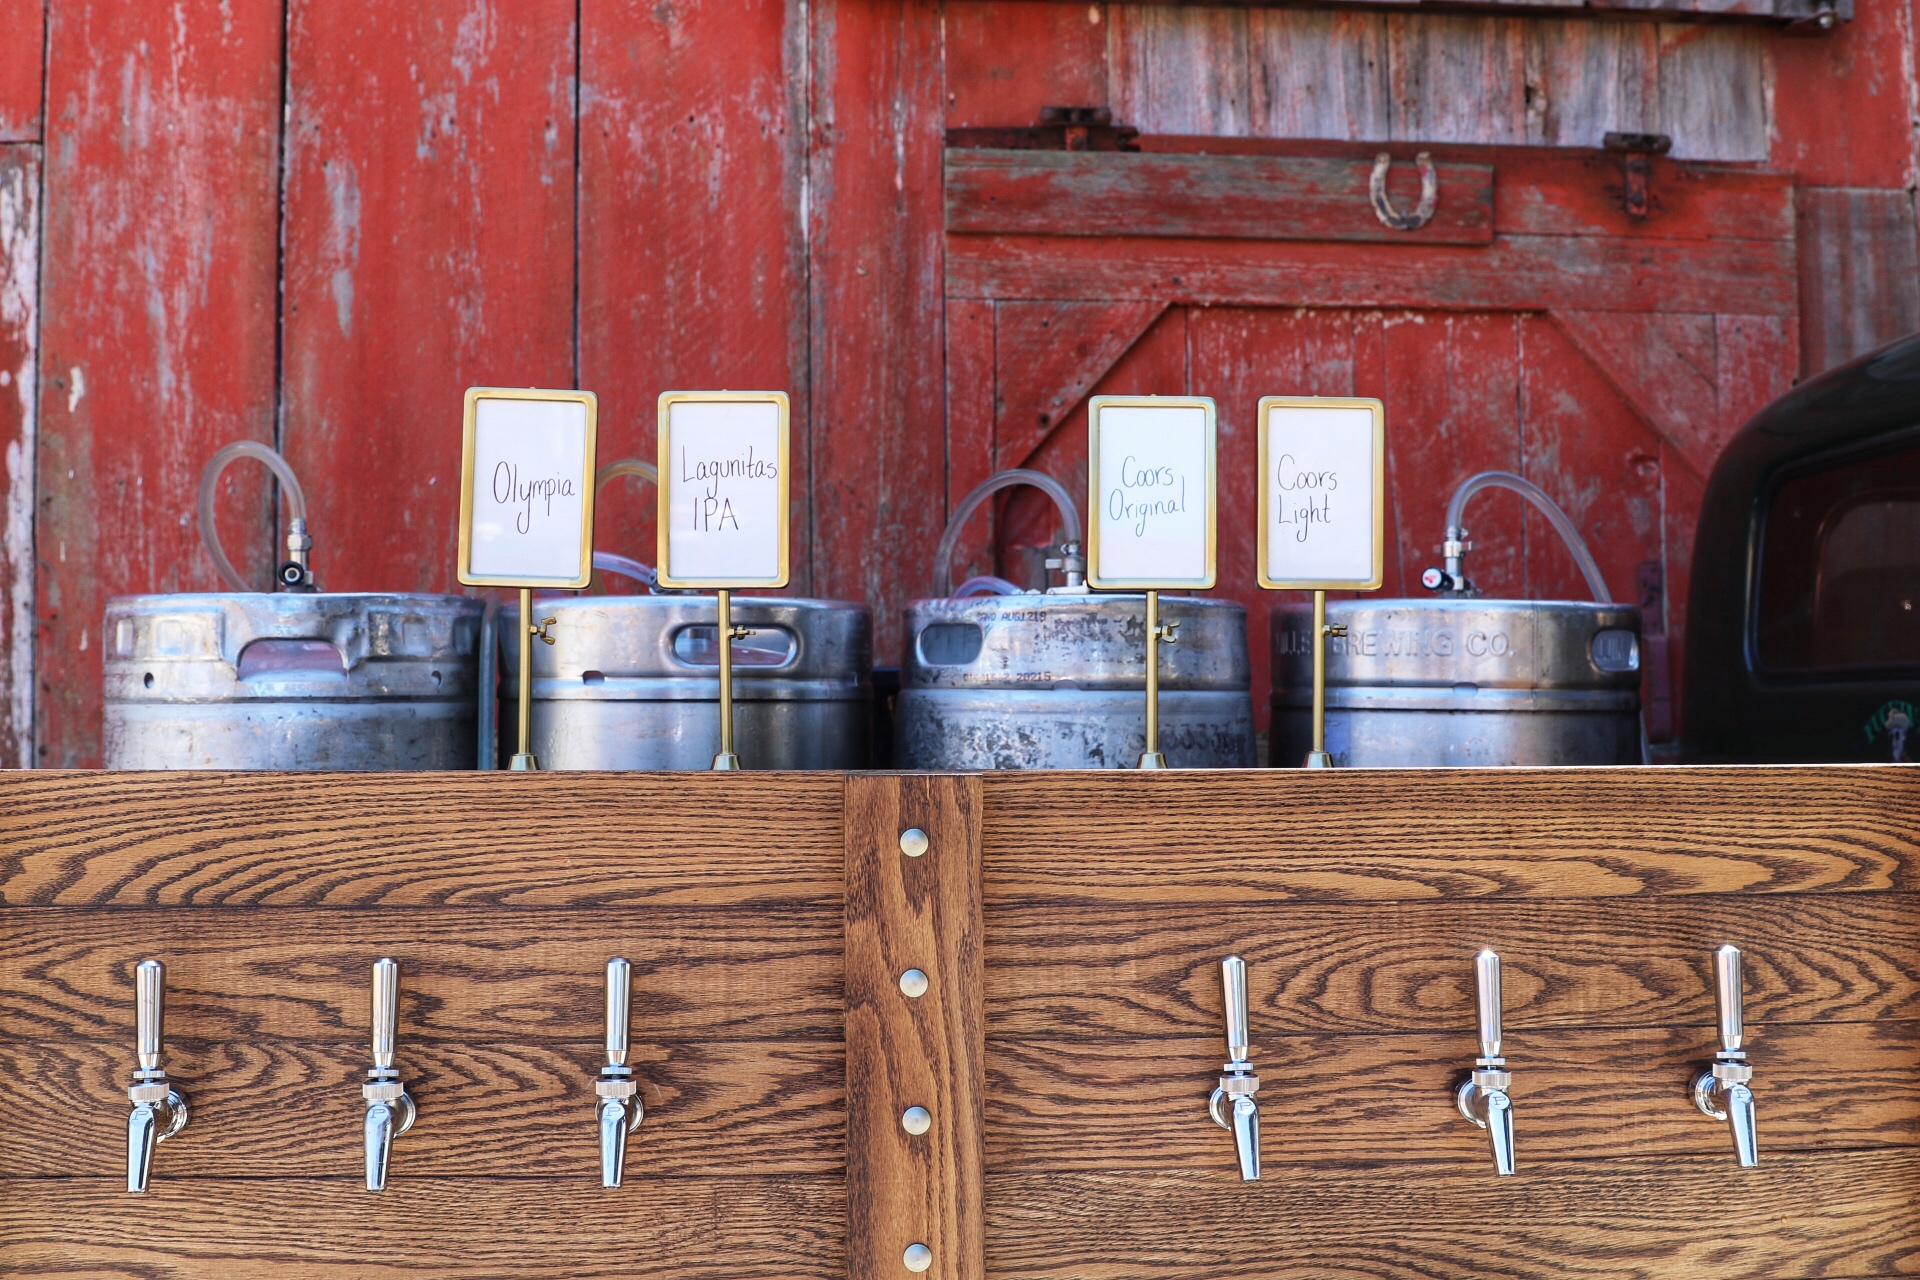 Mean Joe Draft Truck Kegs and Menus